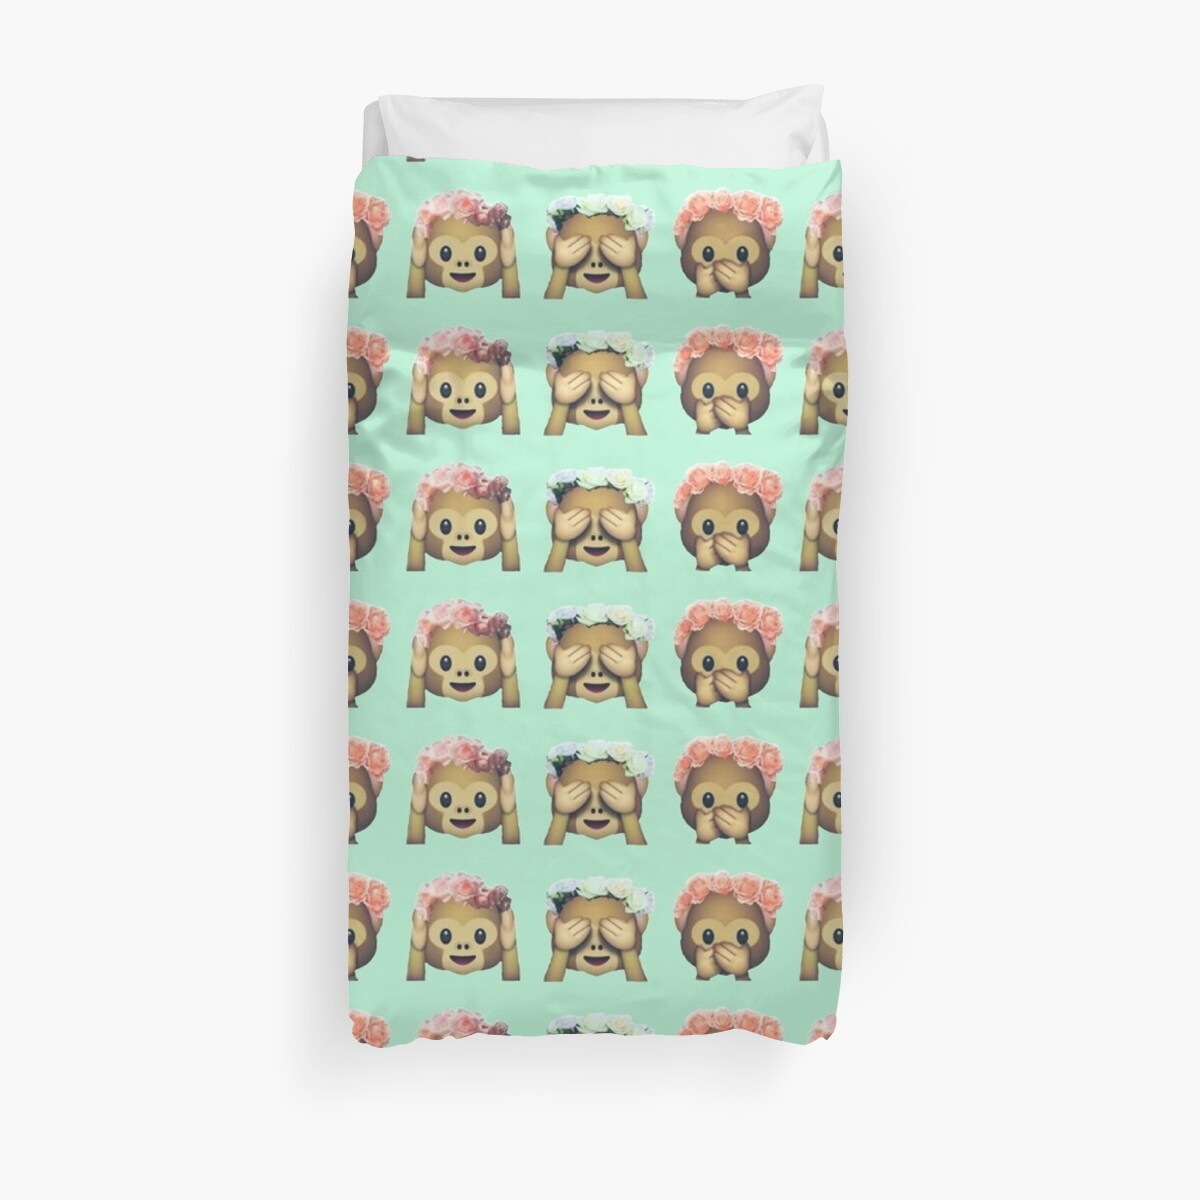 Quot Monkey See No Evil Hipster Flower Crown Emoji Quot Duvet